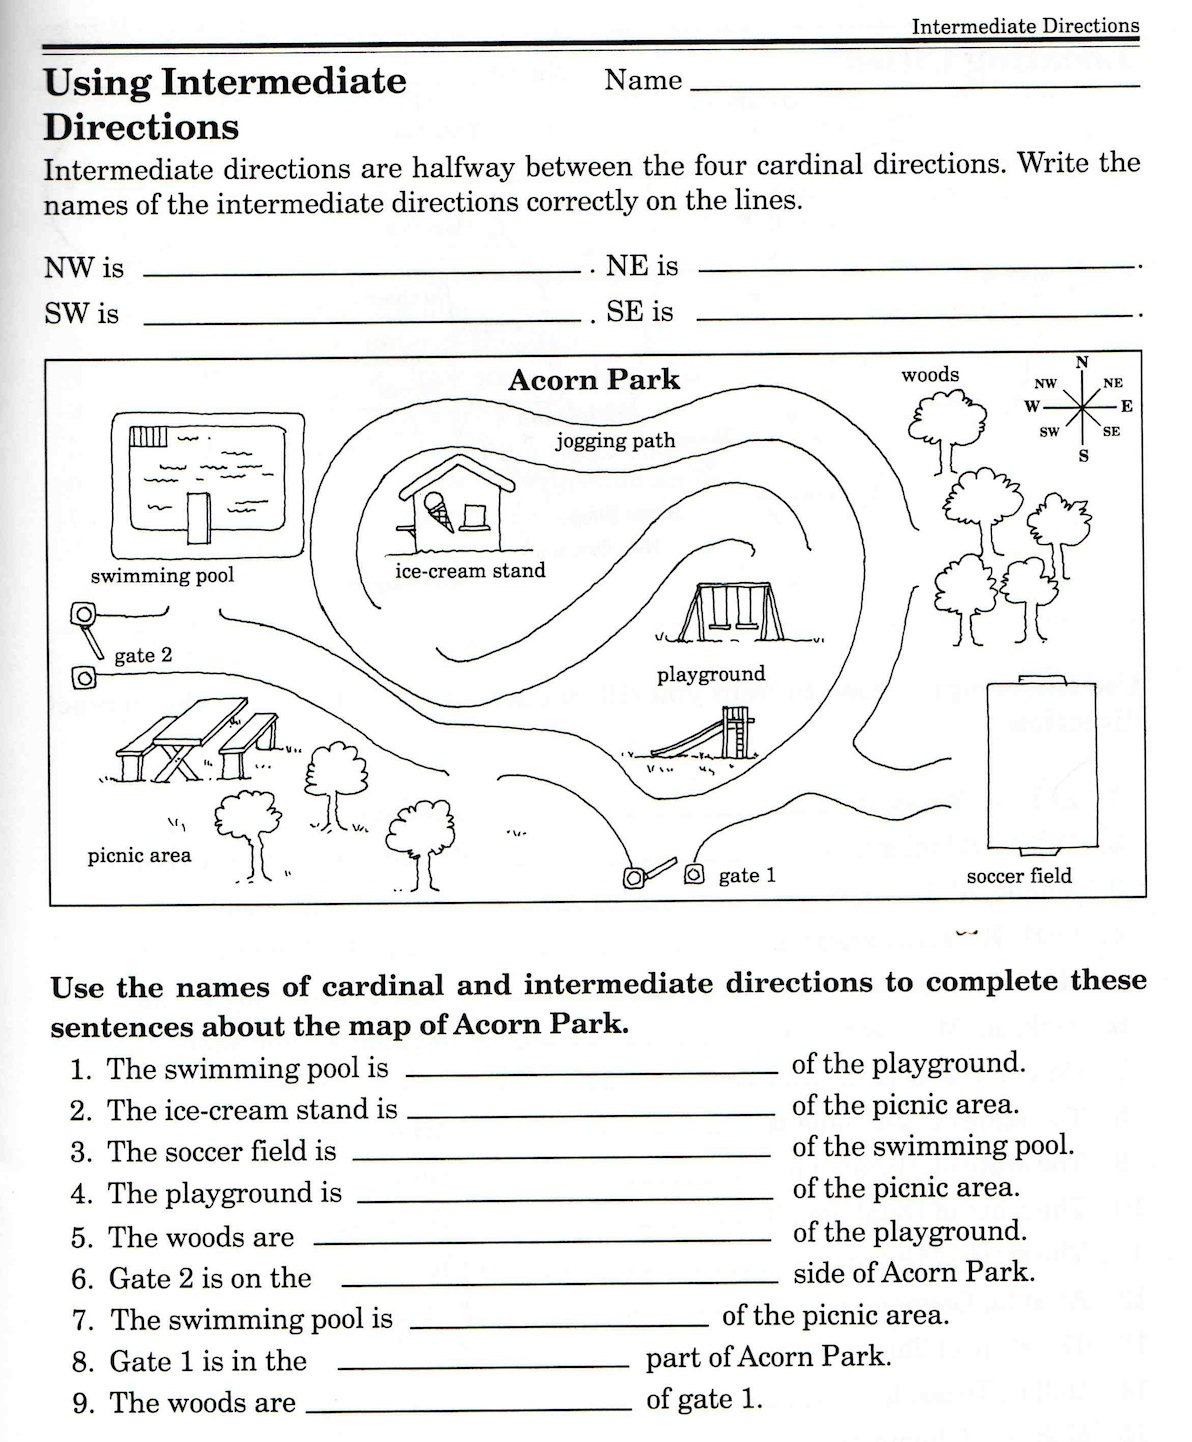 Direction Worksheets Free Library Download And Print Following